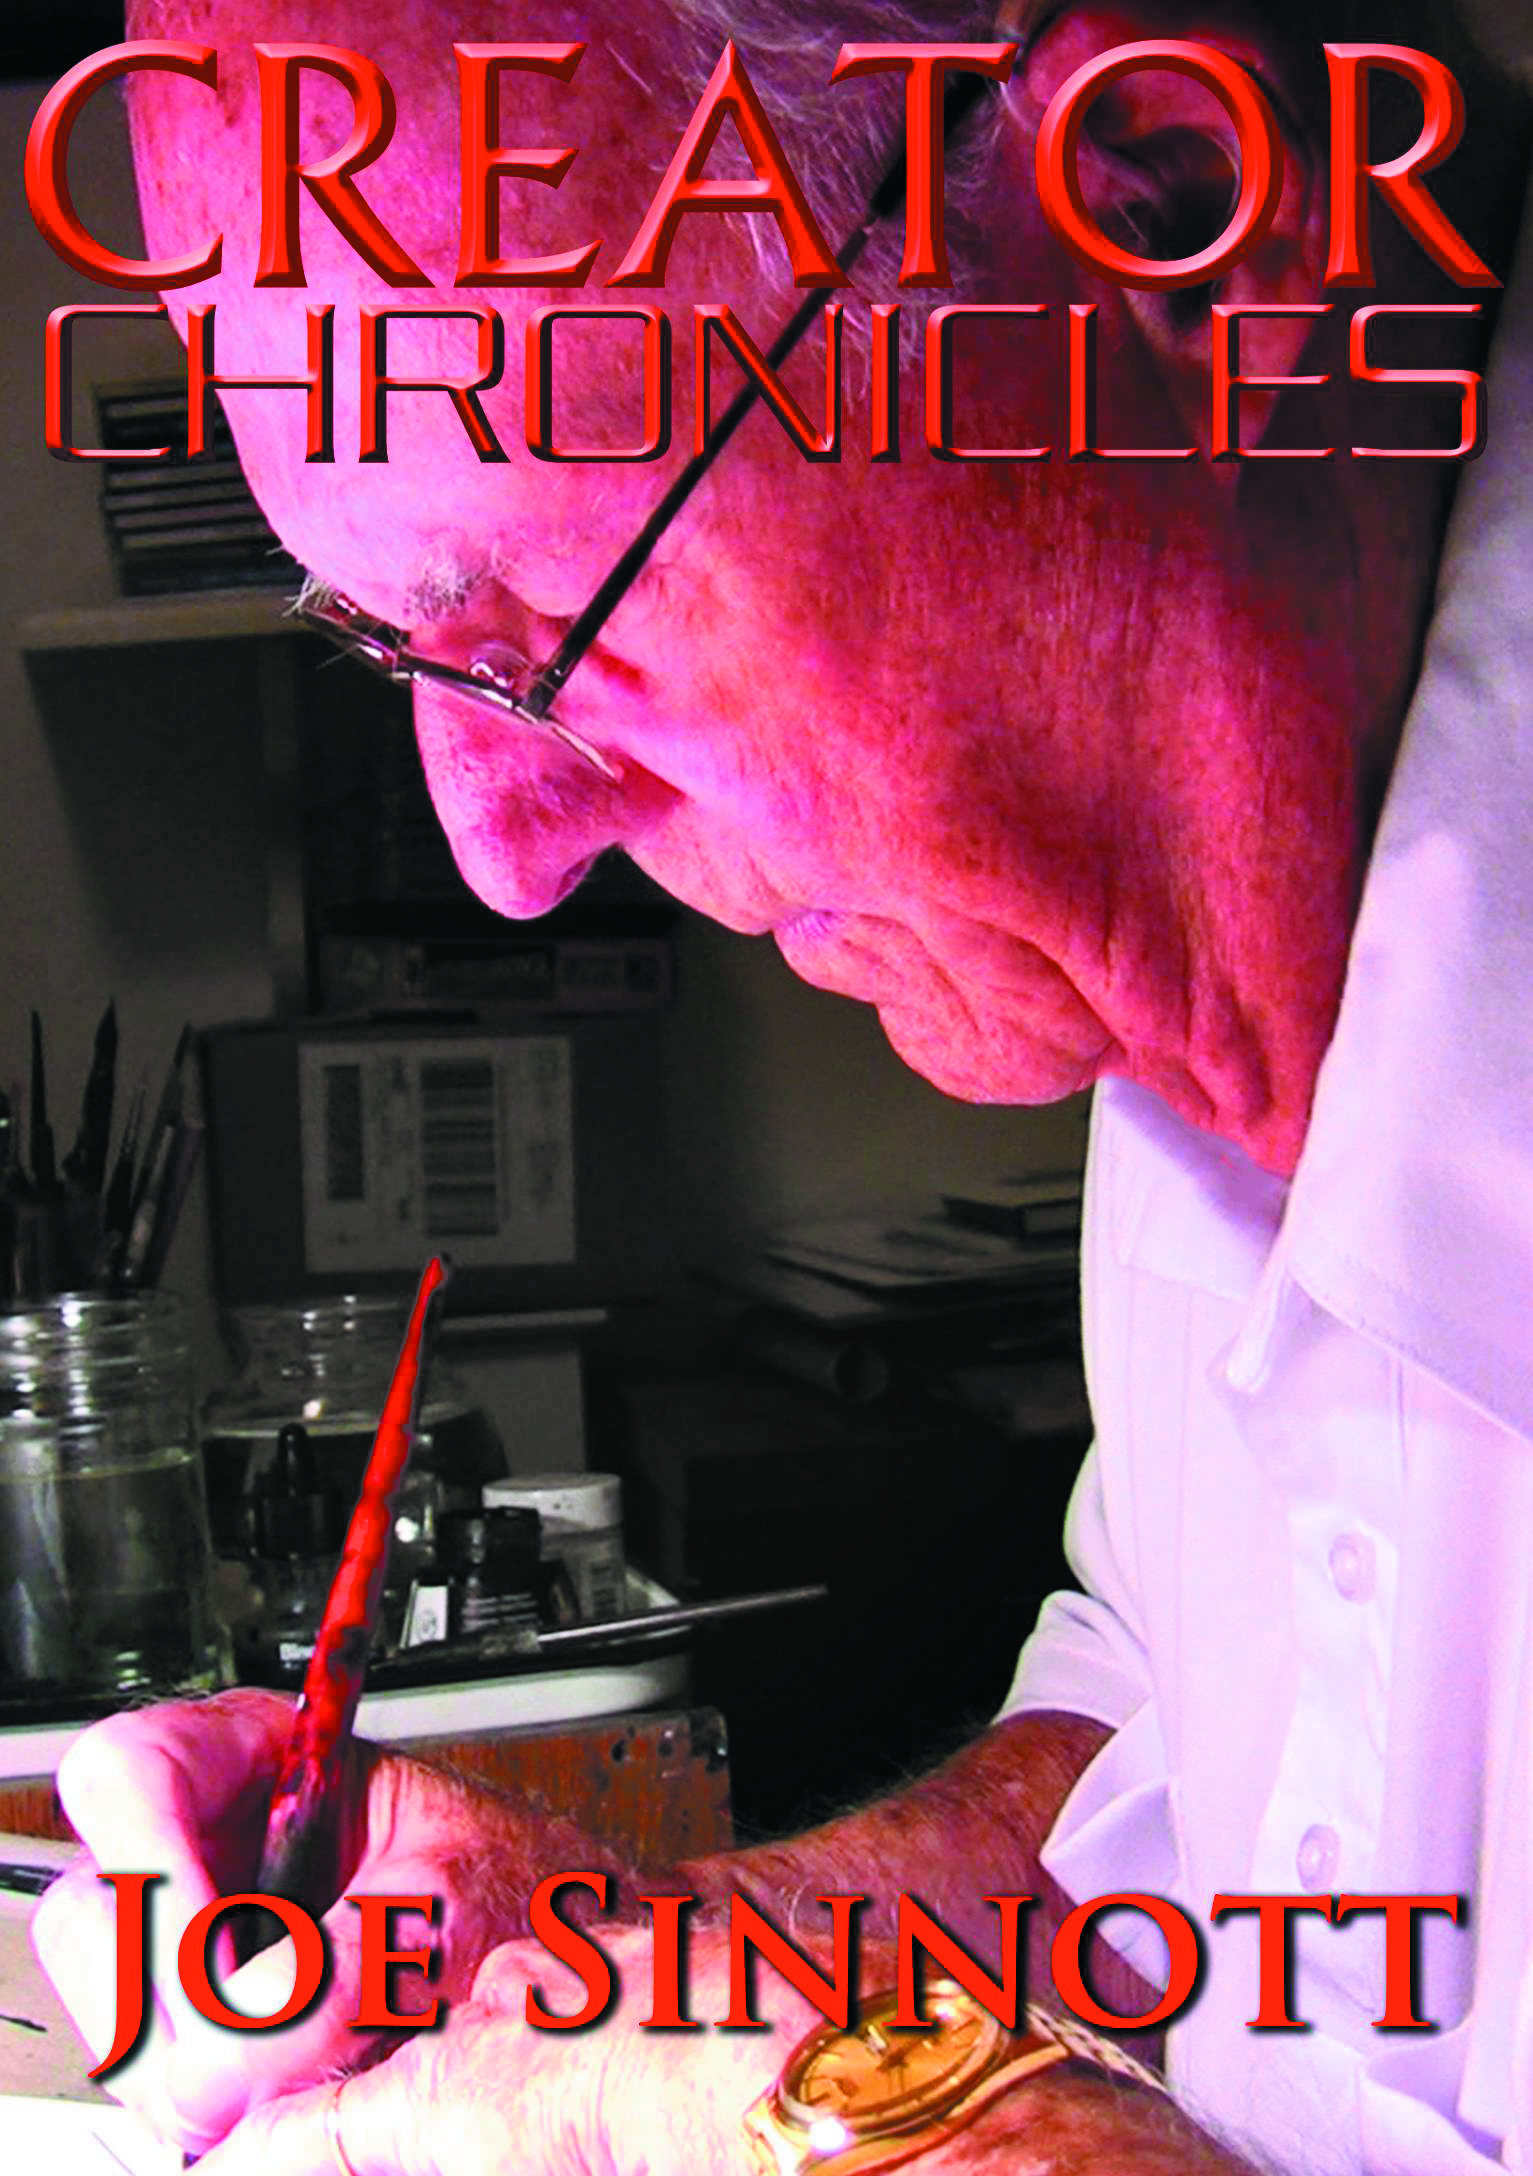 CREATOR CHRONICLES PIONEERS JOE SINNOTT DVD